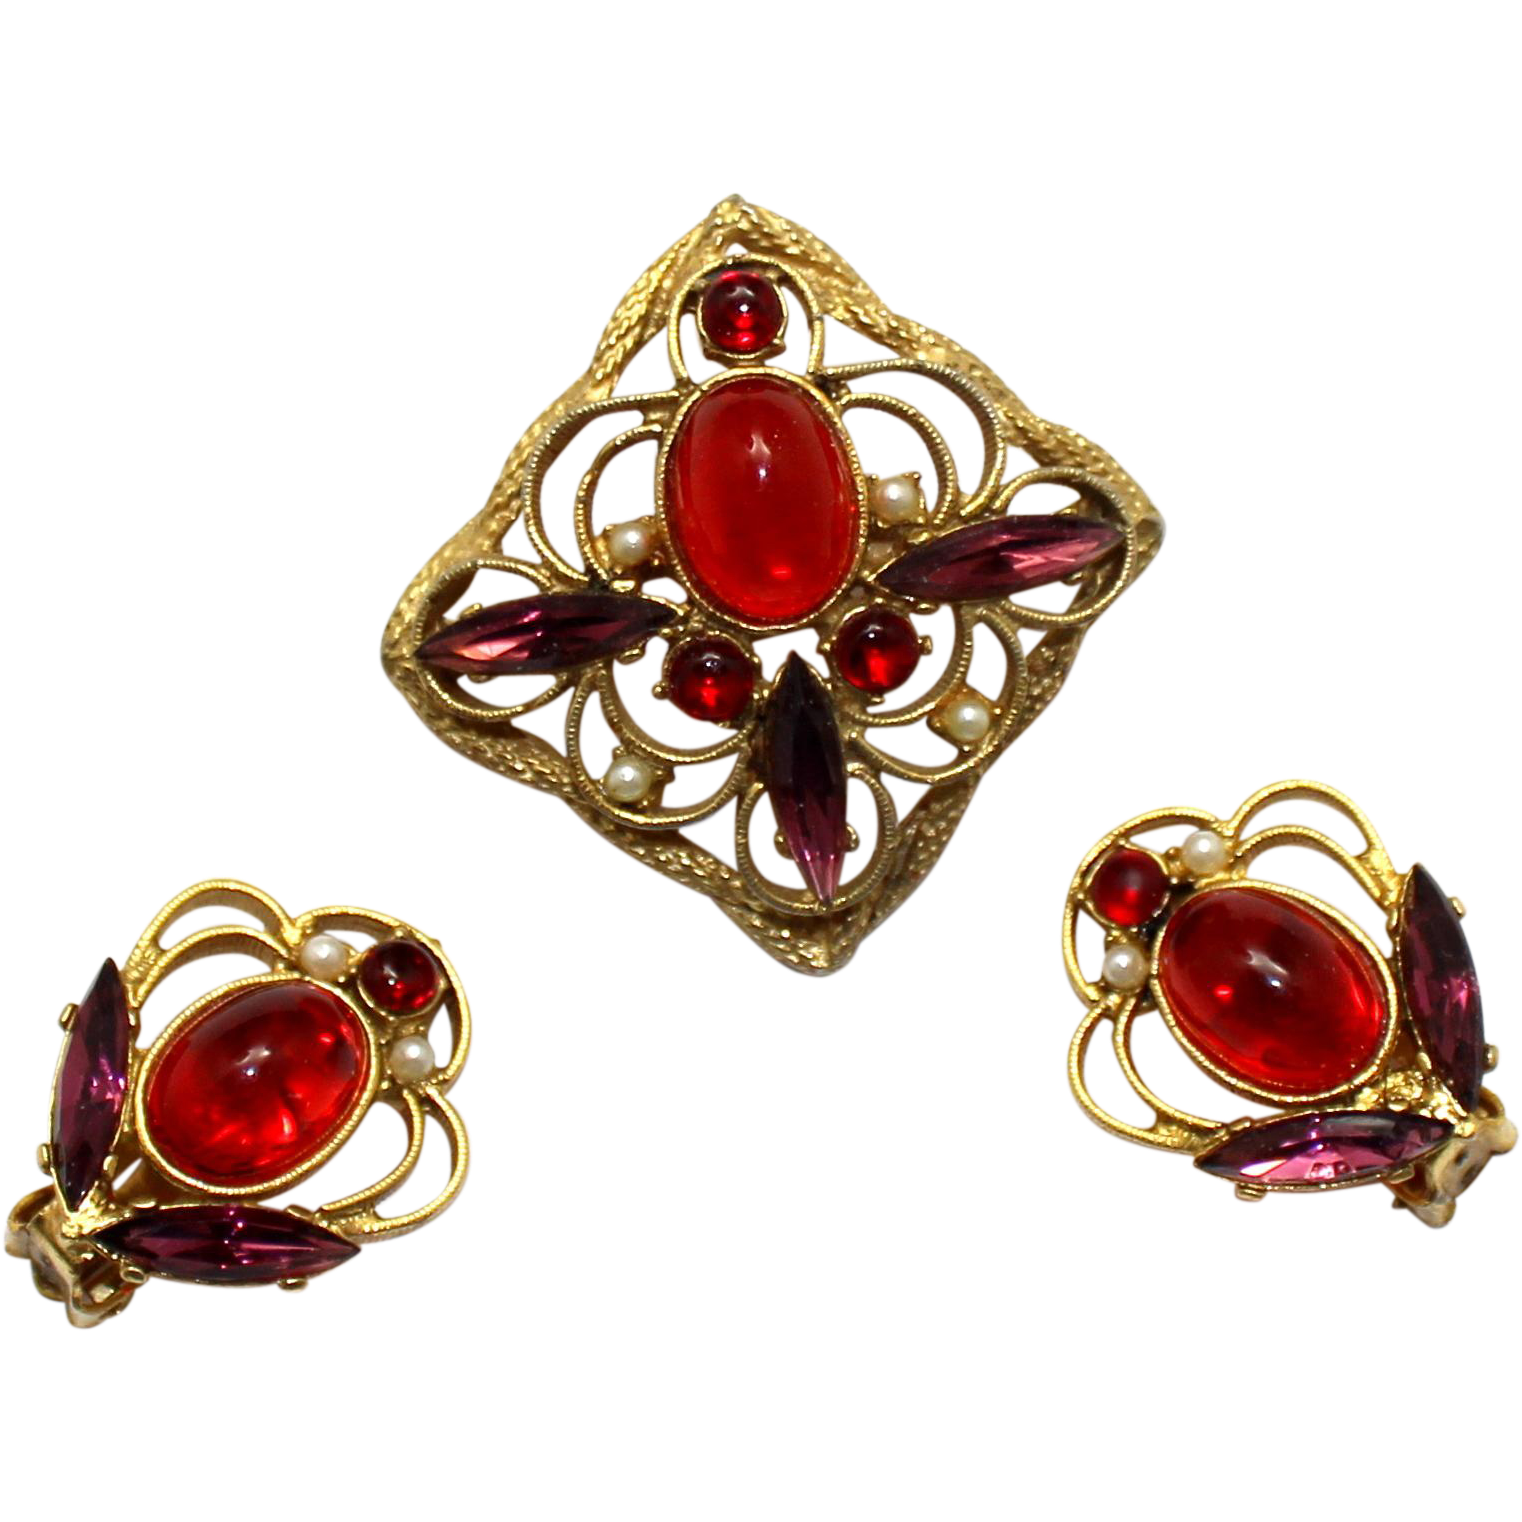 Vintage Juliana (D and E) Red Cabochon Metal Work Brooch and Earrings Demi Parure